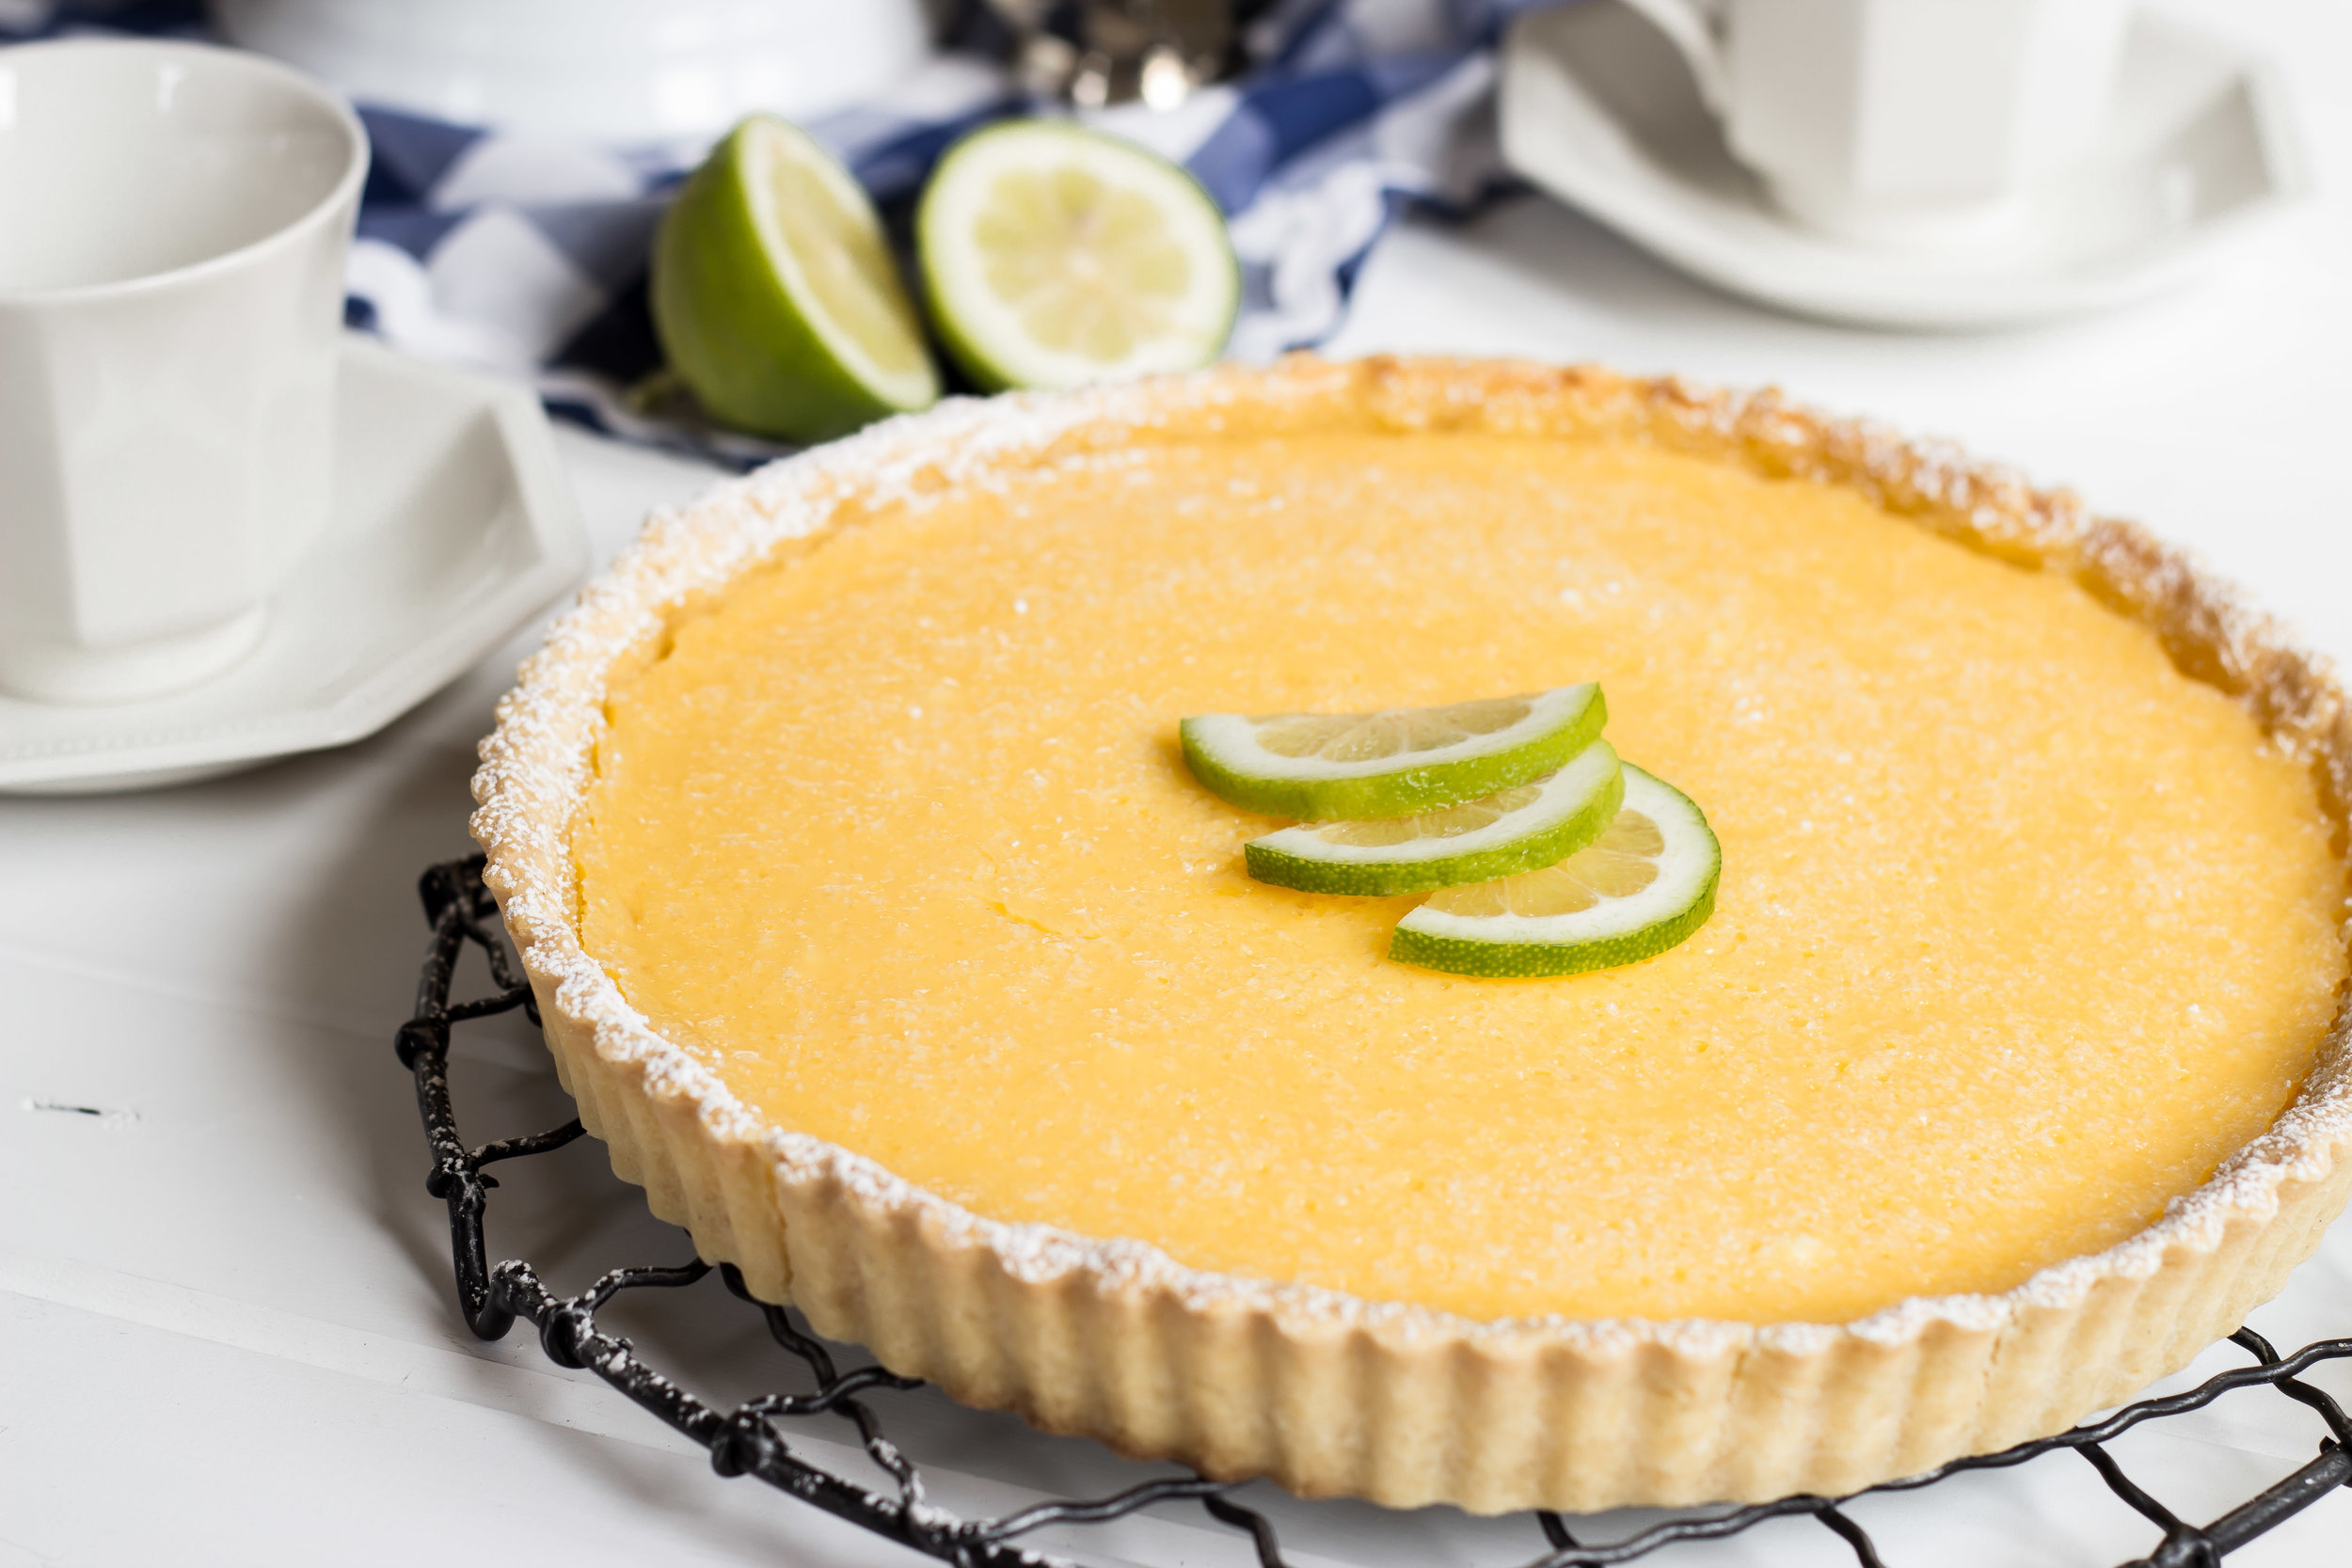 Lemon Tart 1.jpg